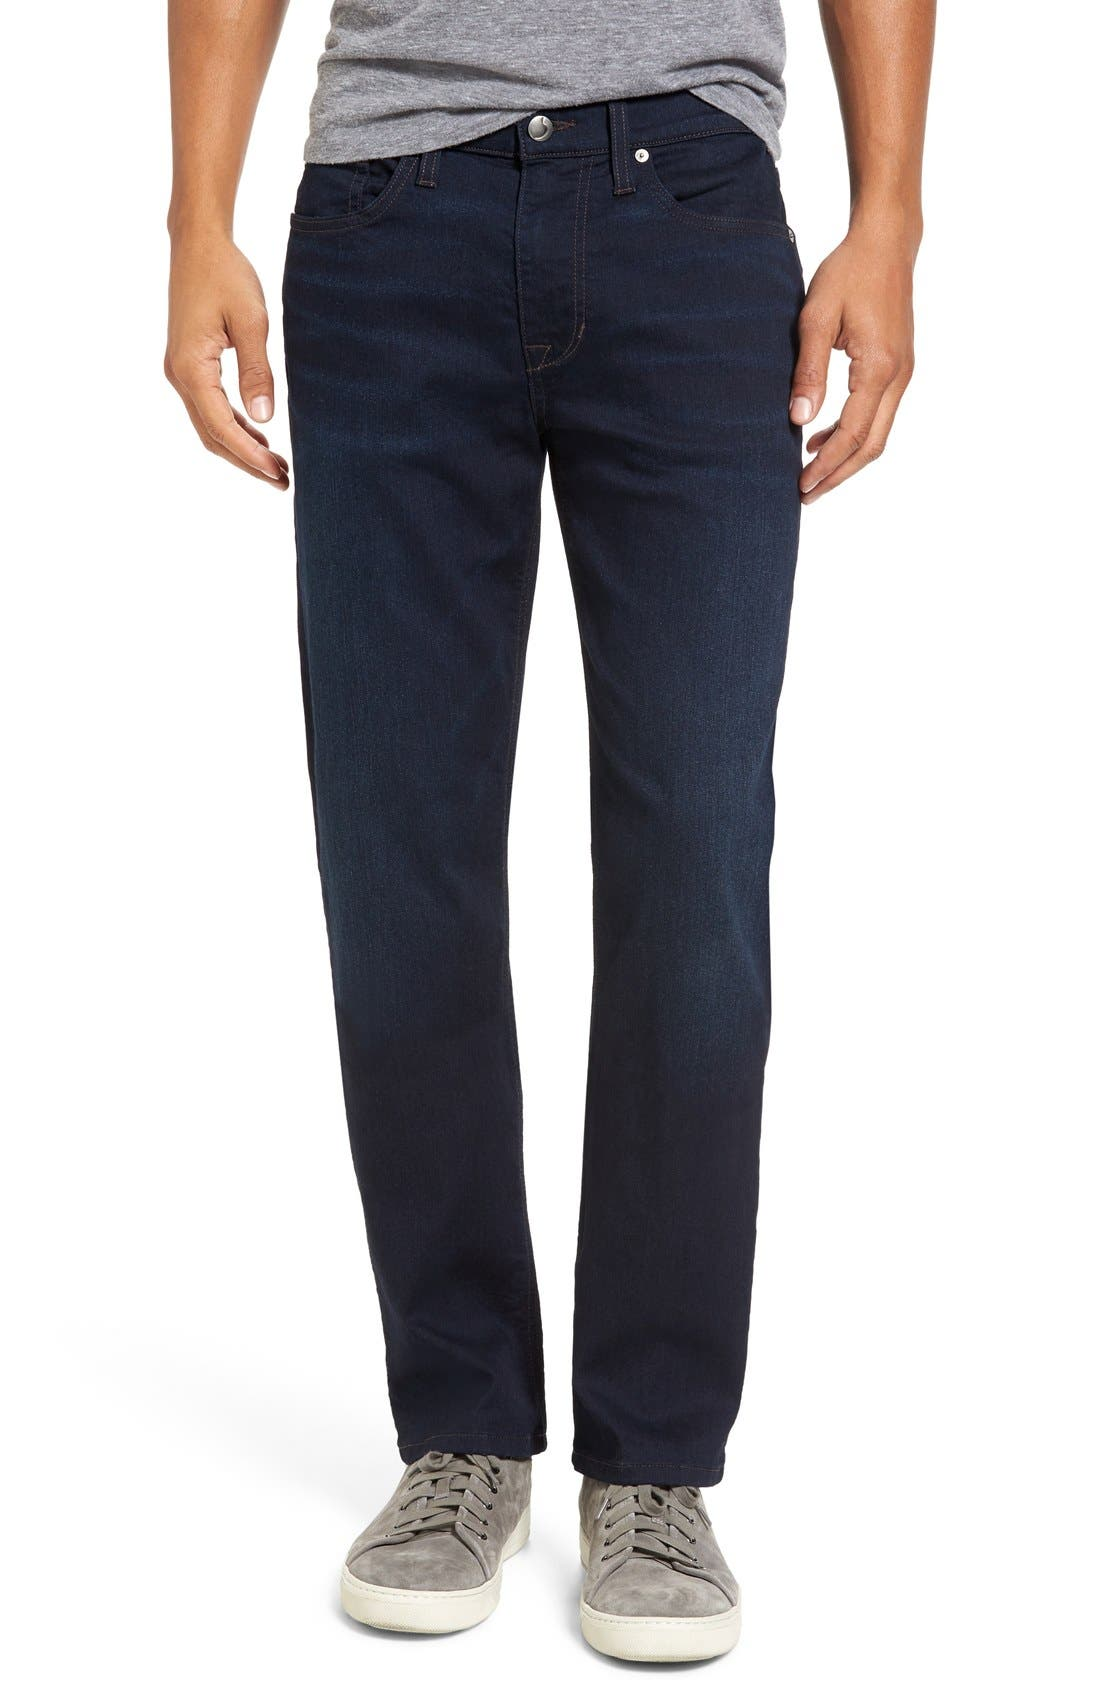 JOE'S Brixton Kinetic Slim Straight Leg Jeans